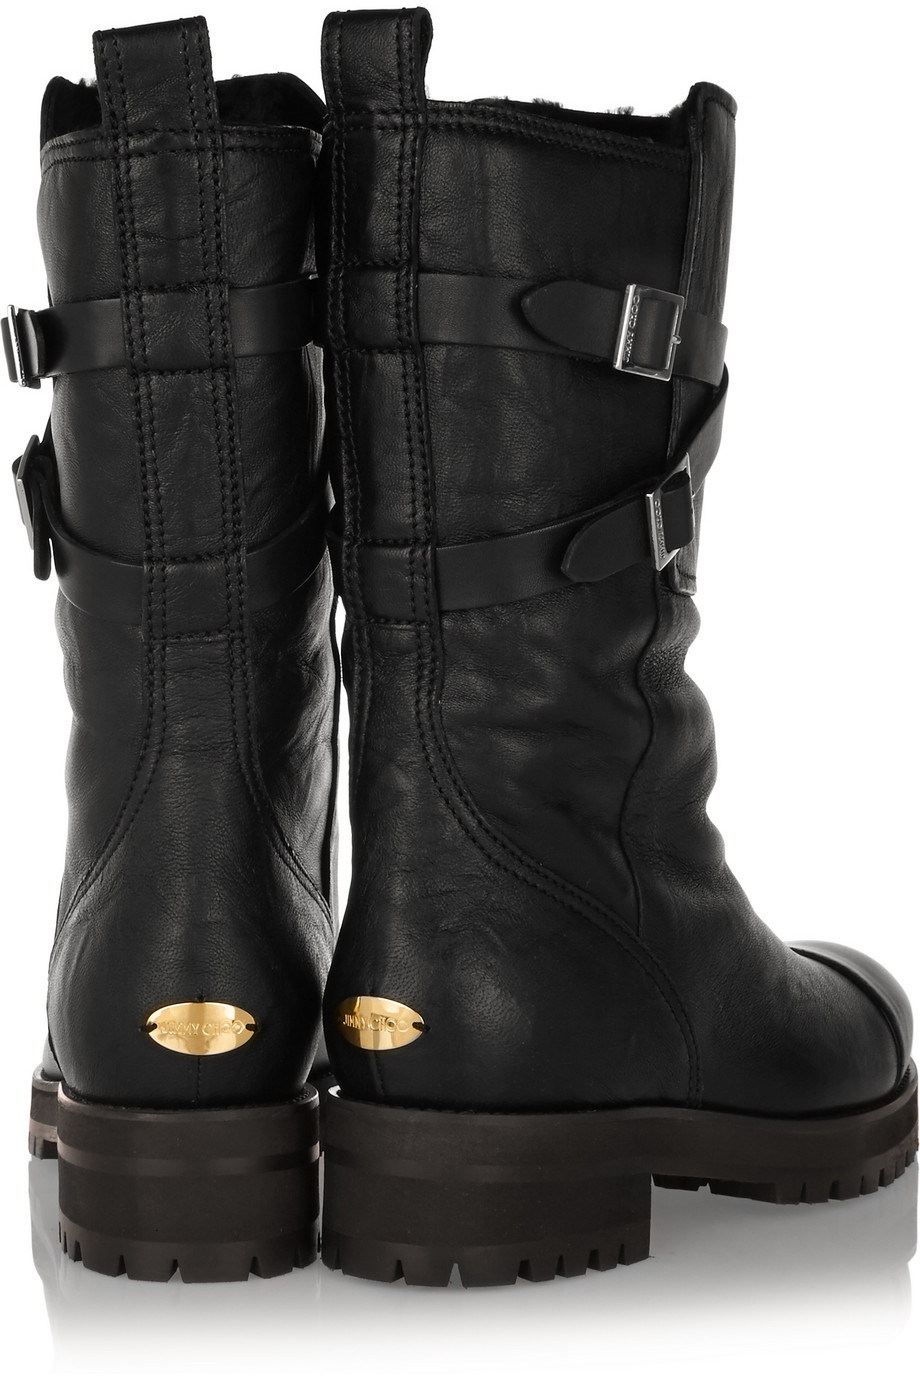 75c4a86d2bb9f Jimmy Choo Dwight Shearling-Lined Leather Biker Boots in Black - Lyst